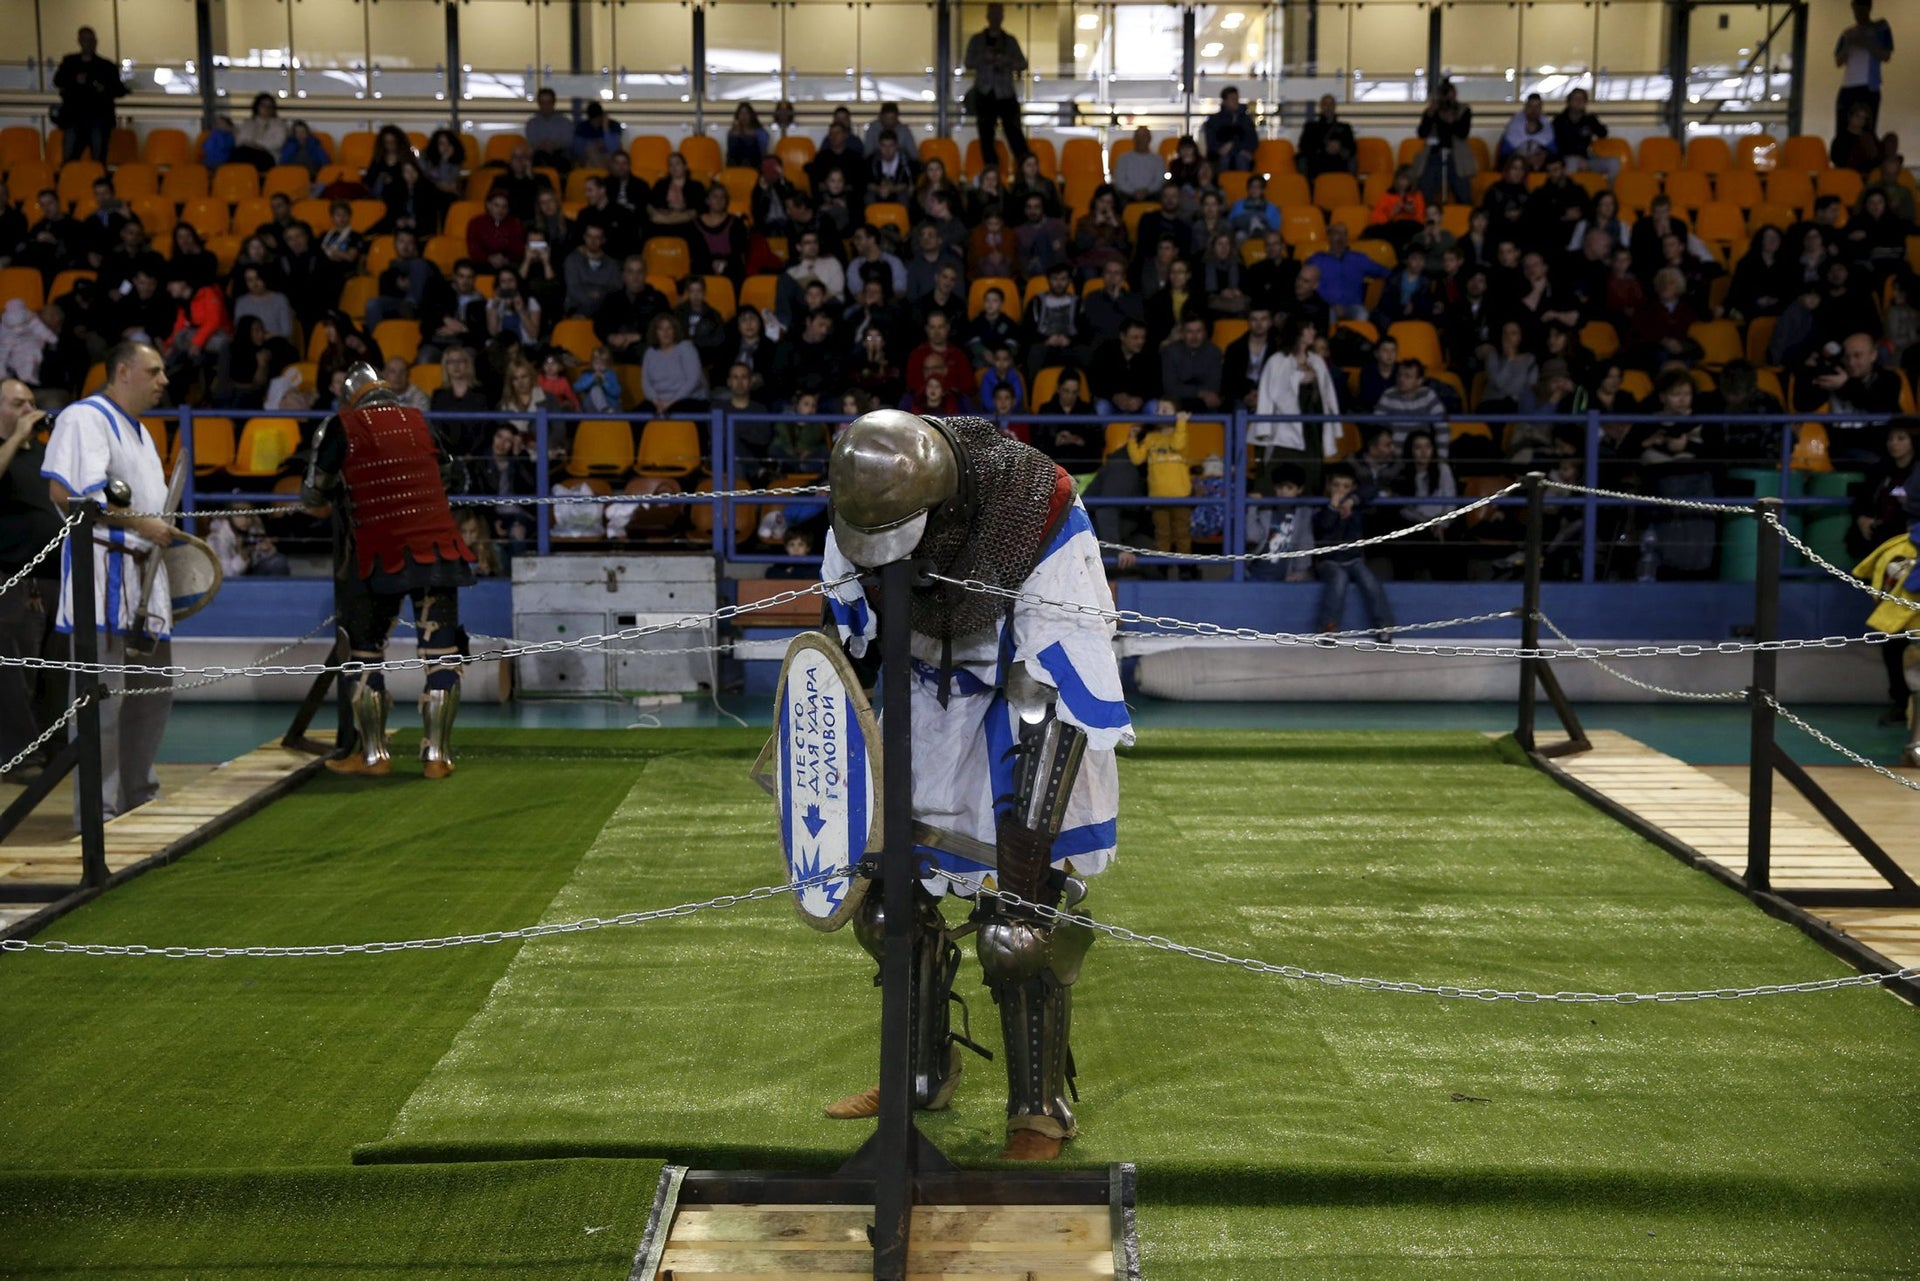 A man dressed as a knight rests during a fight at an international medieval tournament in Tel Aviv, January 23, 2016.